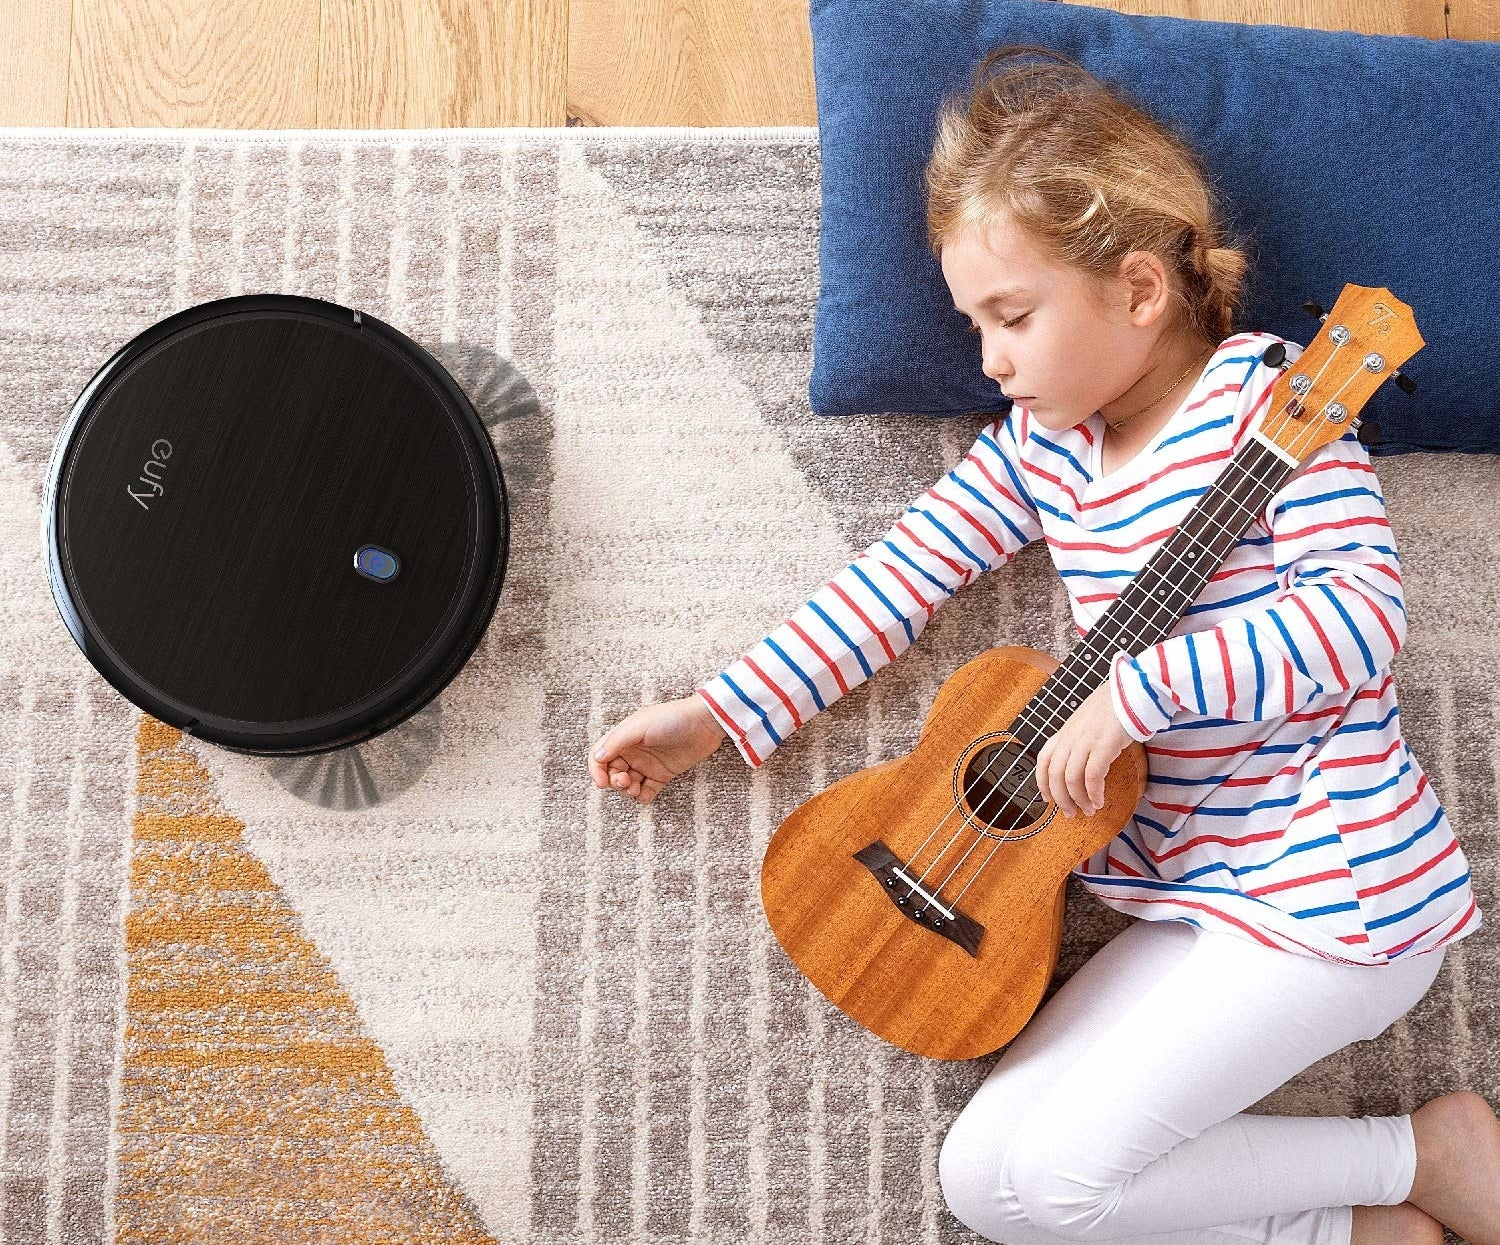 A child lying on the floor with a robot vacuum cleaning the rug beside them